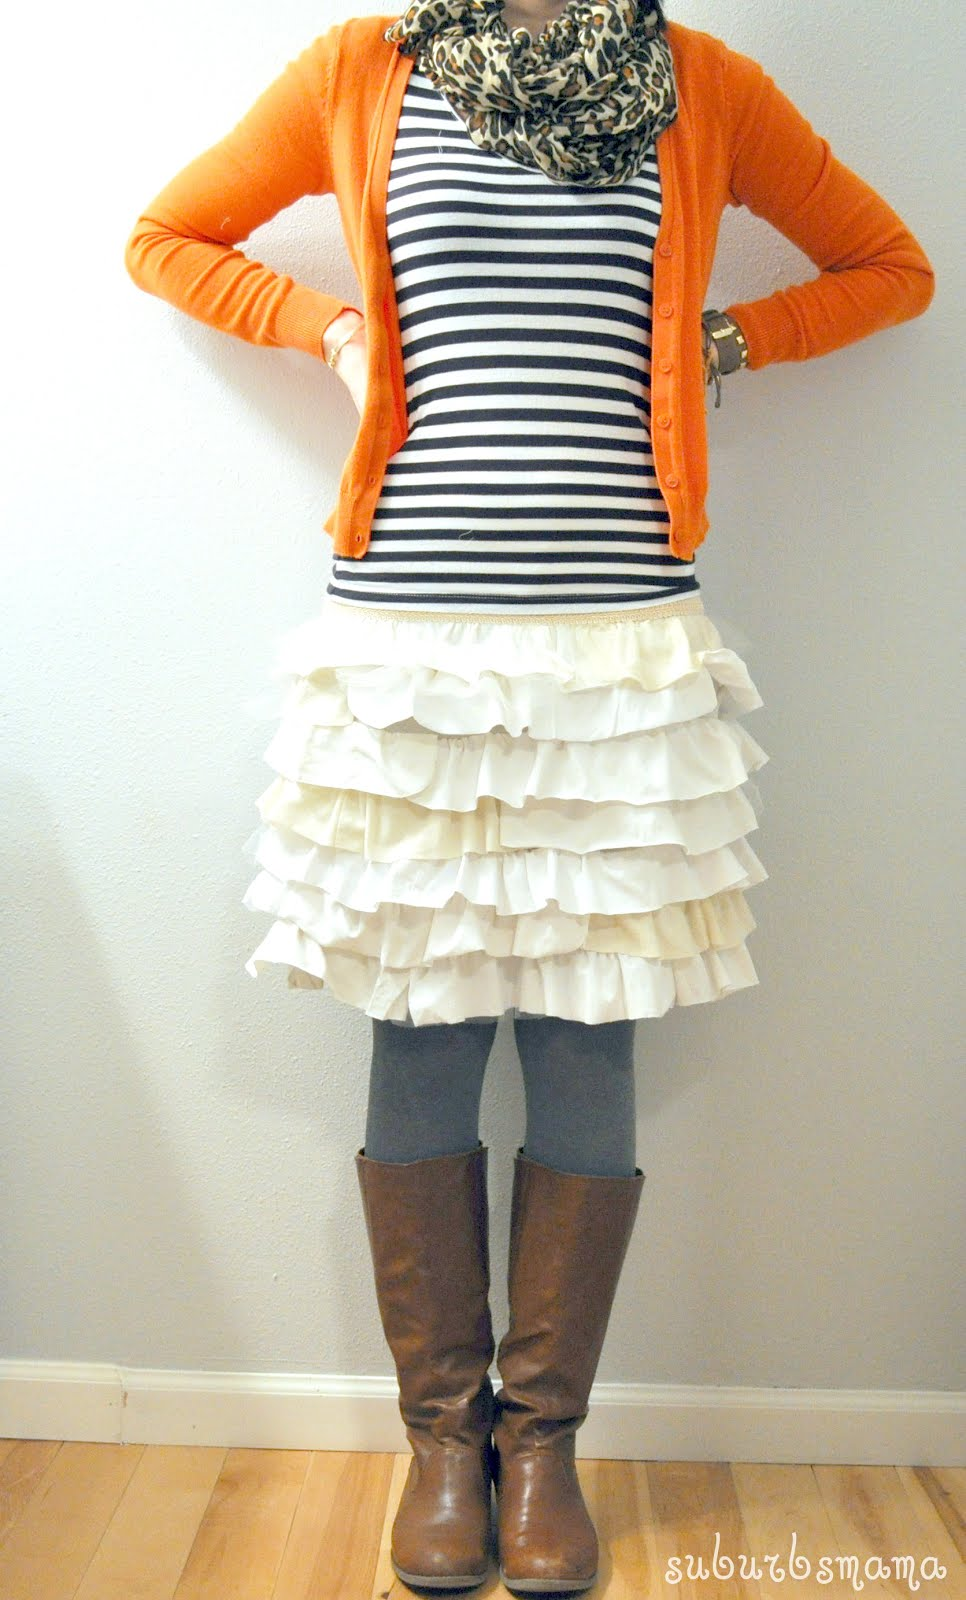 25 Adorable DIY Clothing Projects